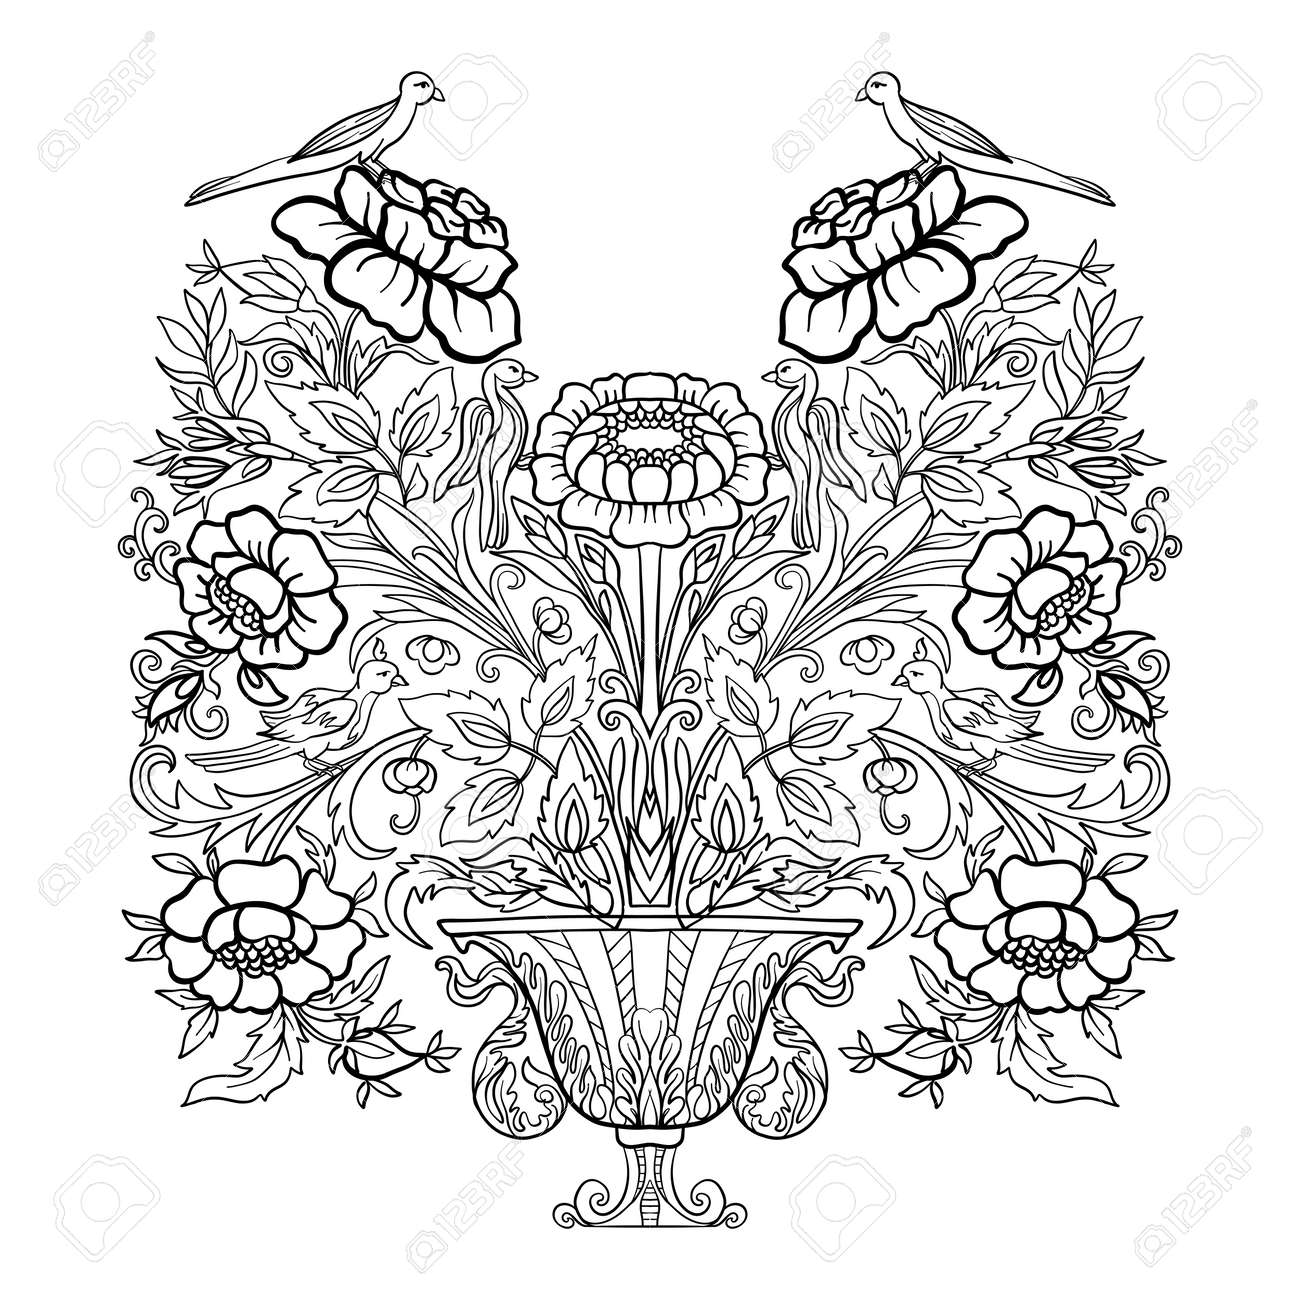 Outline vintage flowers bouquet or pattern royalty free cliparts outline vintage flowers bouquet or pattern stock vector 79512659 izmirmasajfo